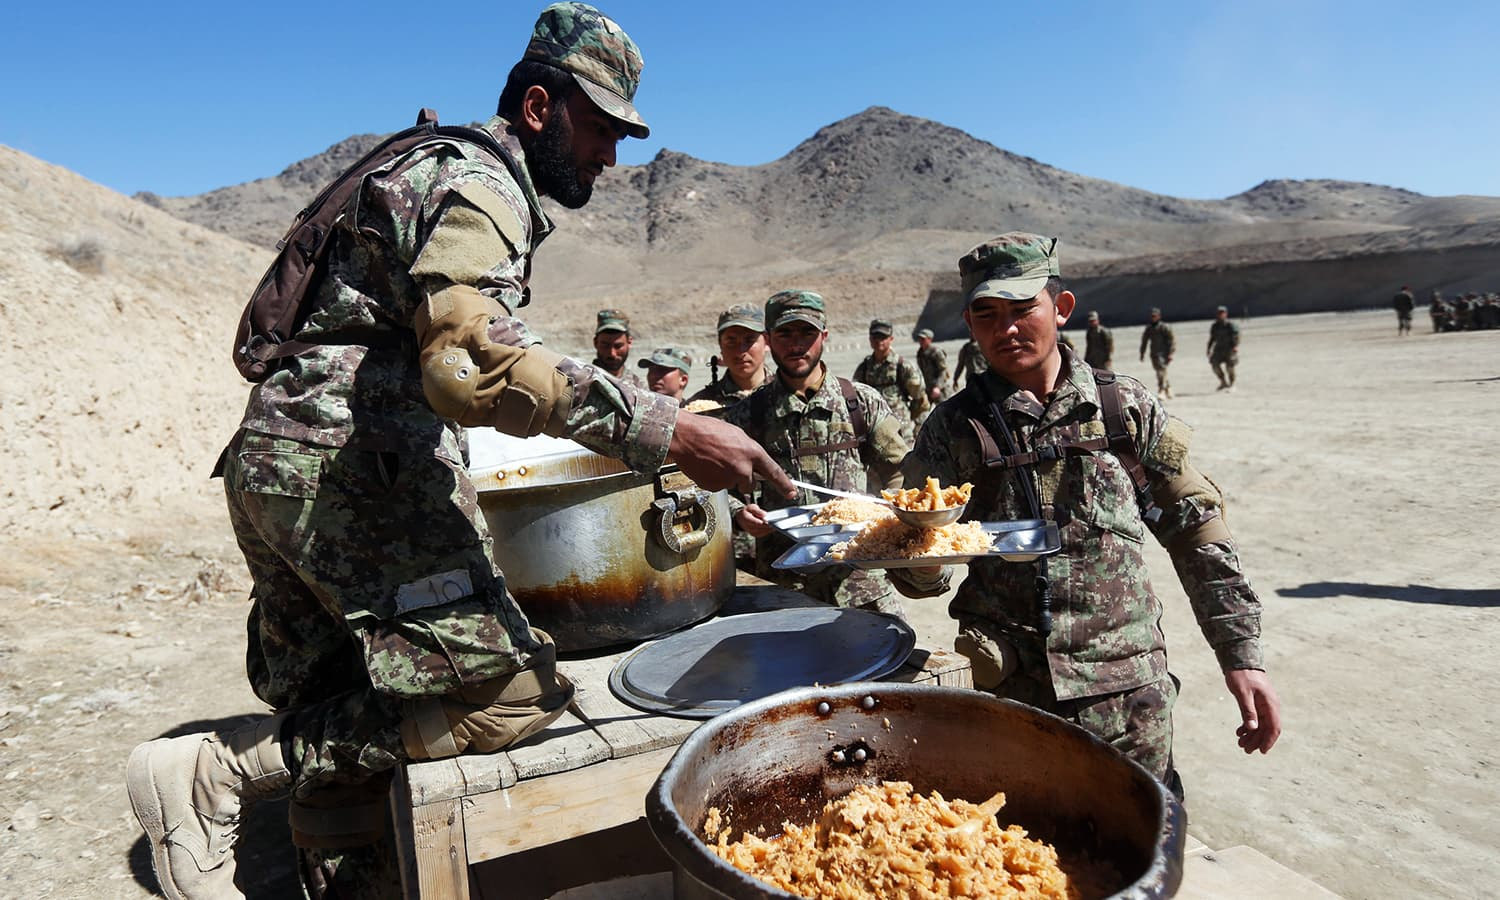 New recruits to the Afghan army Special Forces have their lunch after take part in a military demonstration in Rishkhur. —Reuters